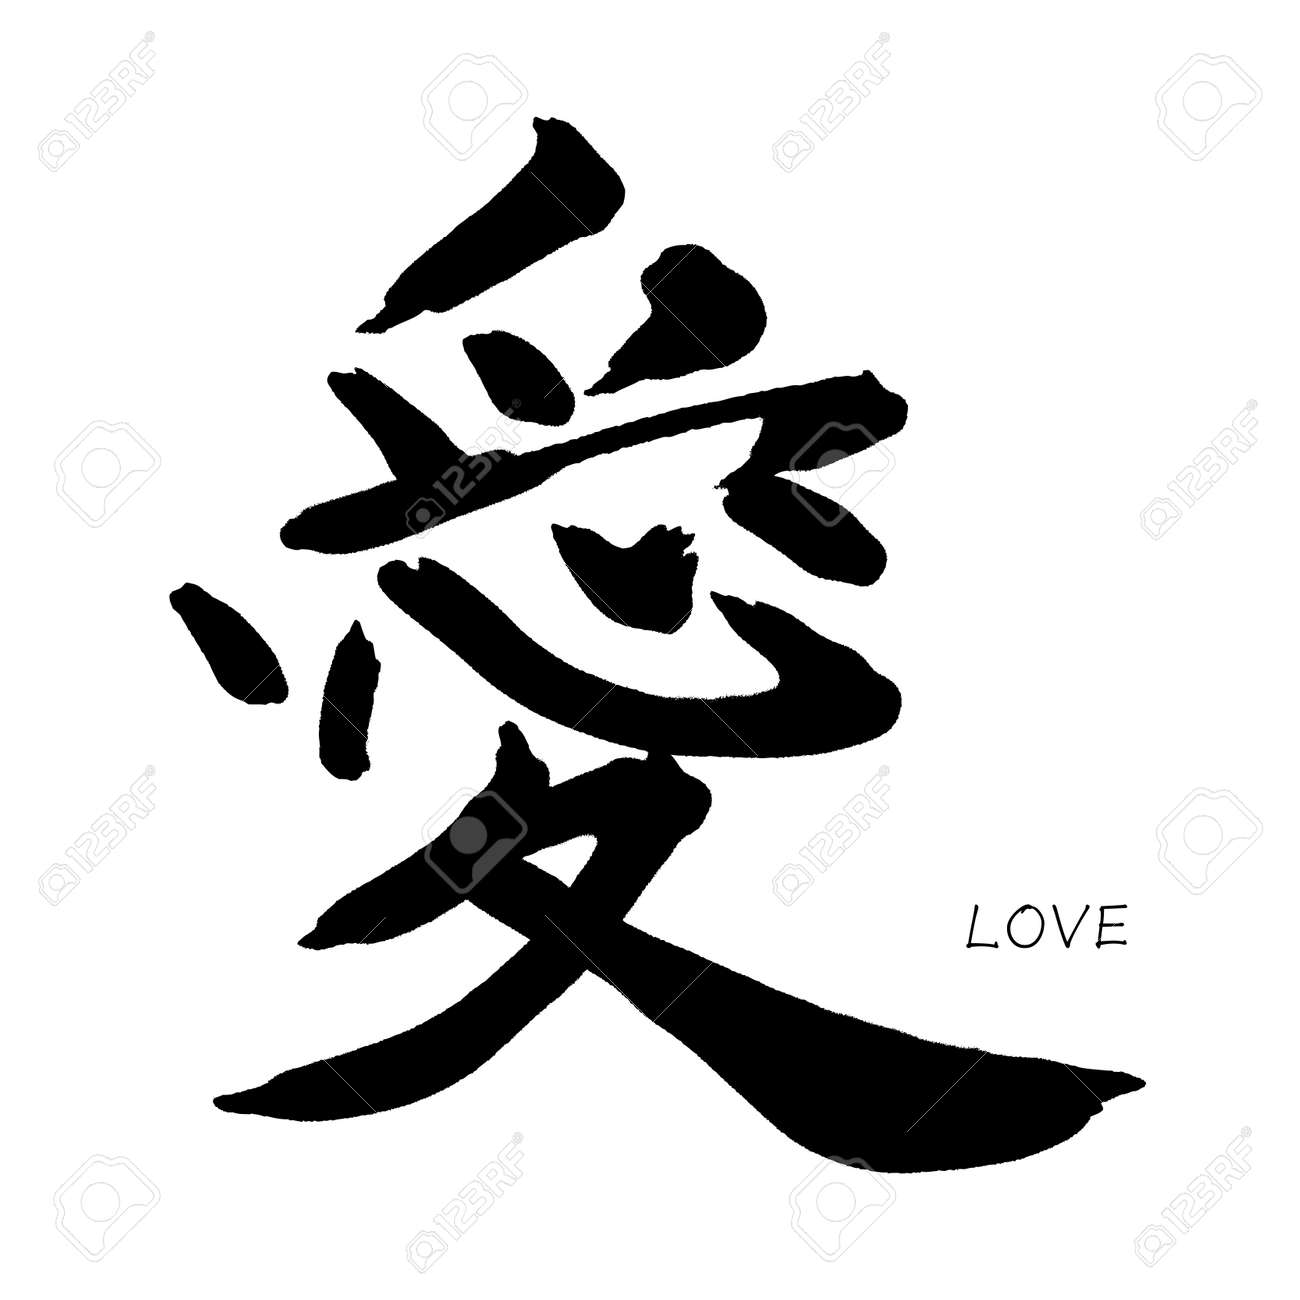 Chinese Calligraphy Ai Translation Love Royalty Free Cliparts